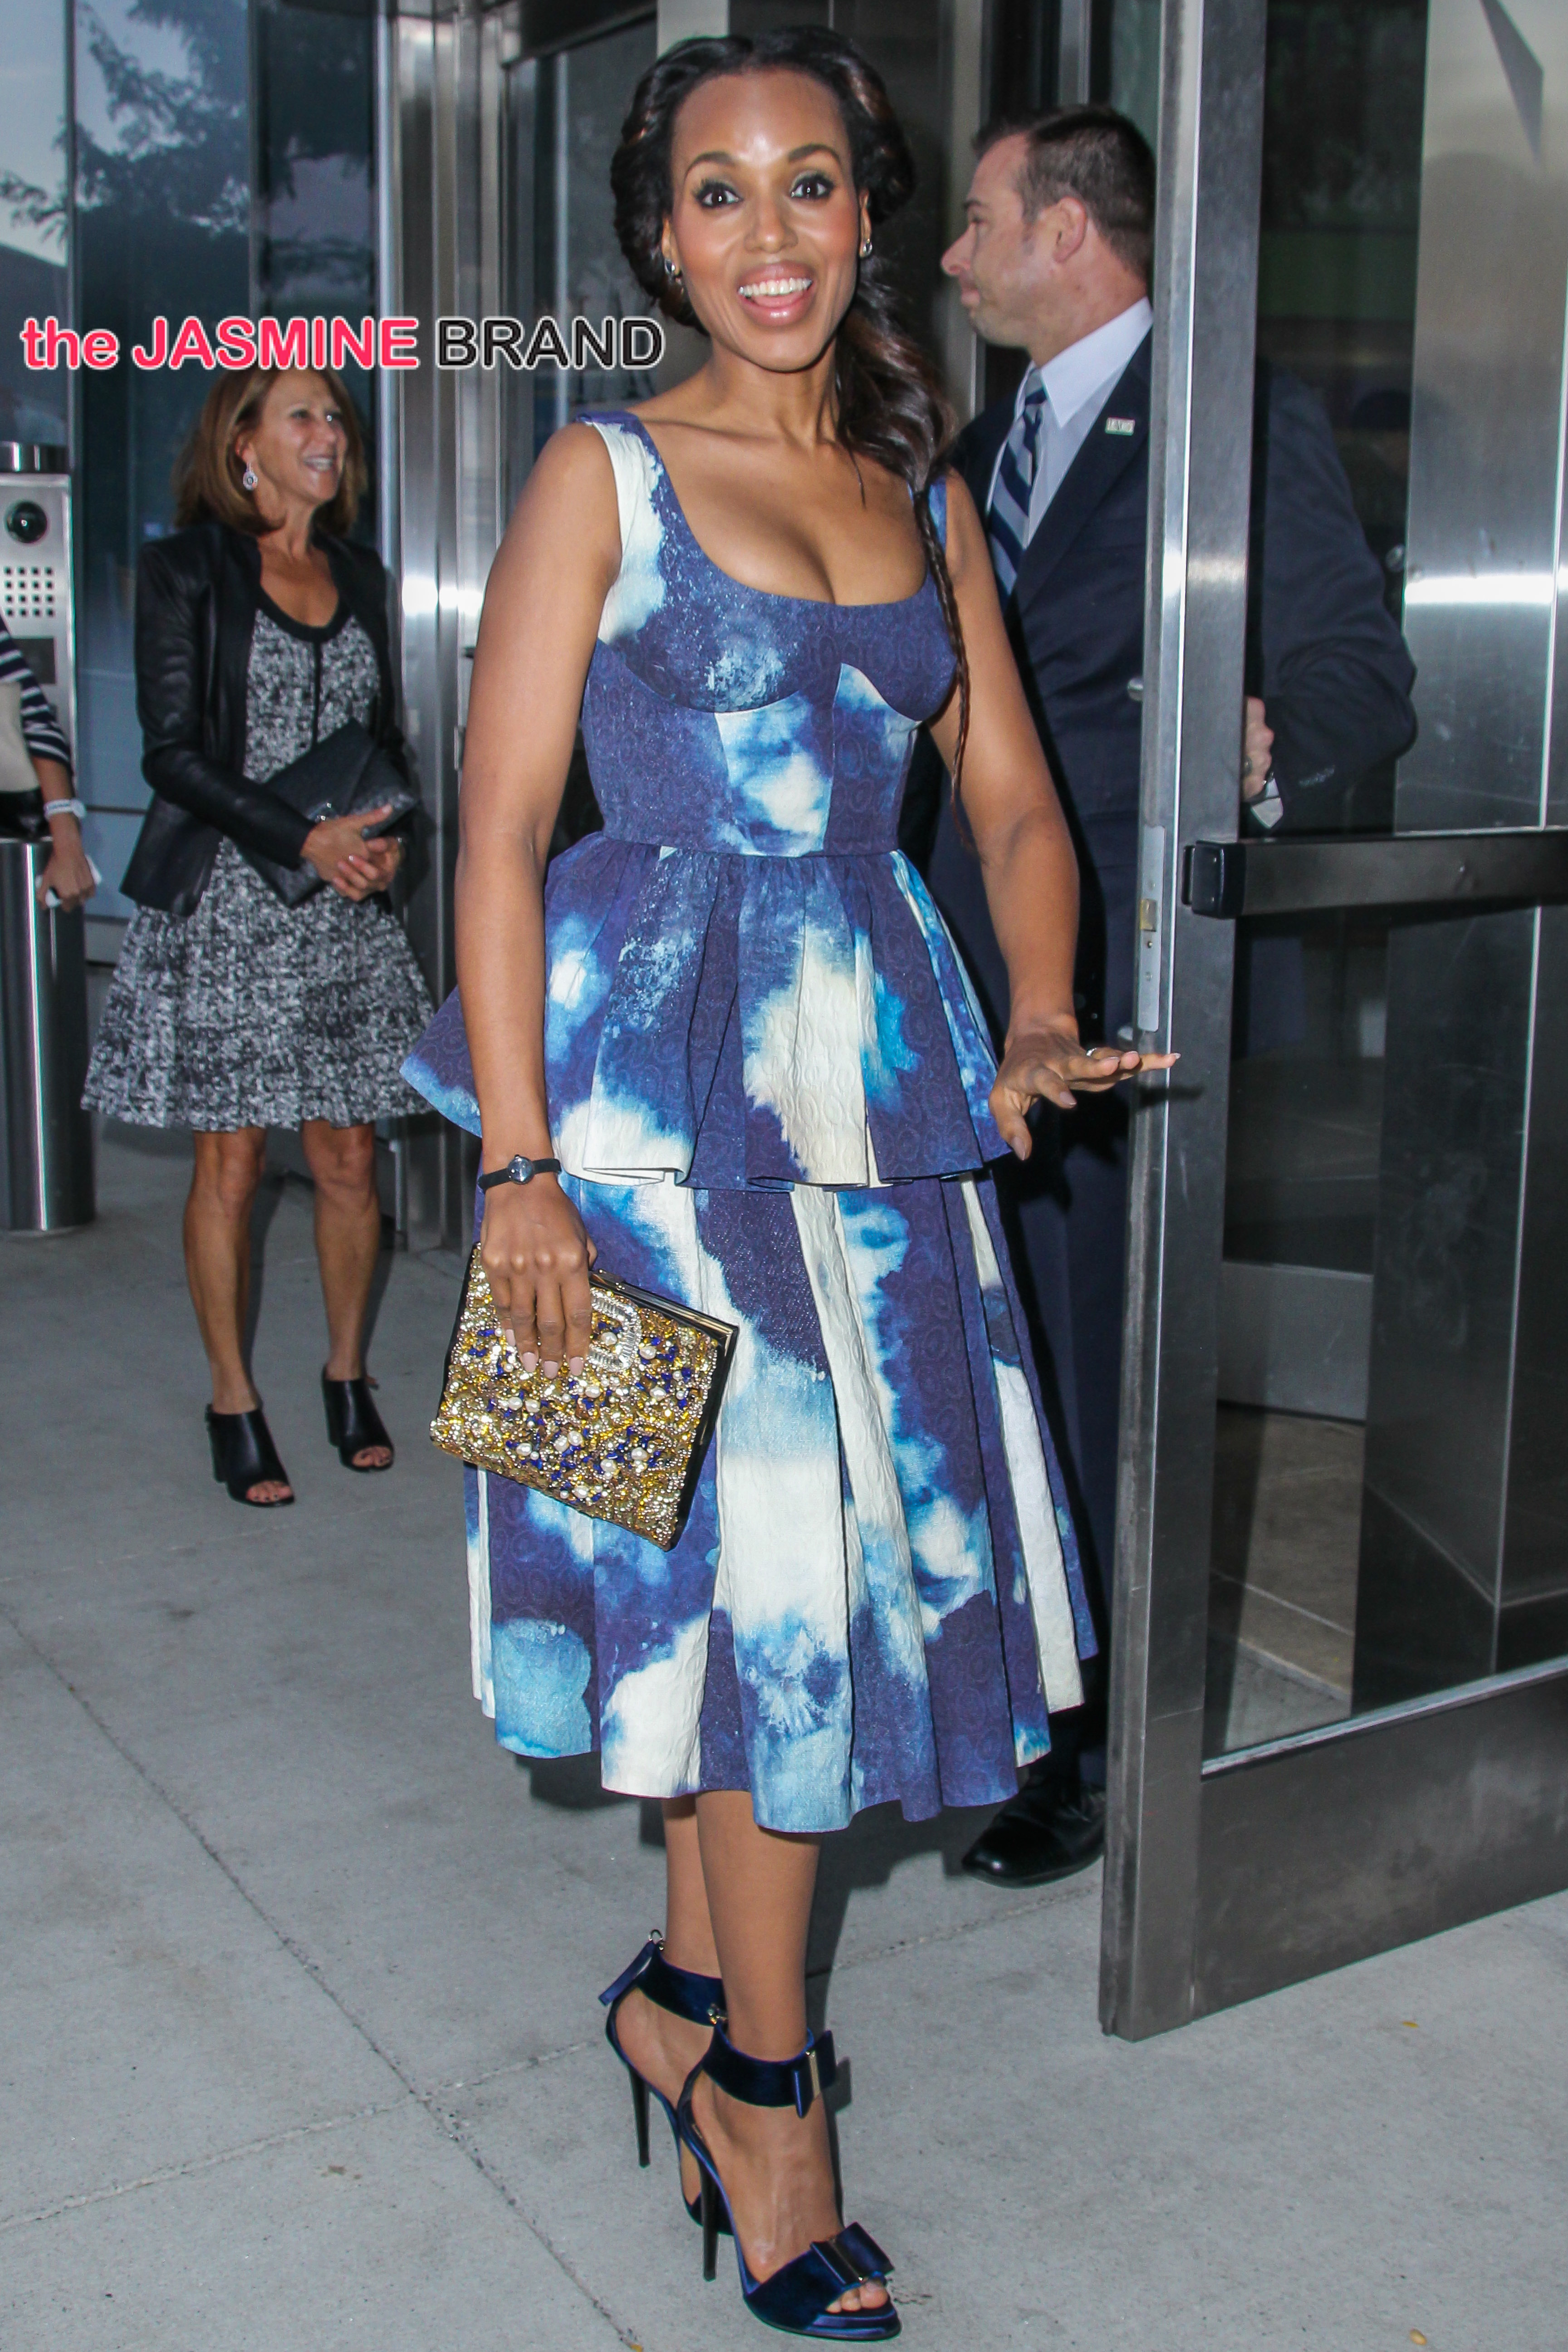 Kerry Washington is spotted in NYC streets